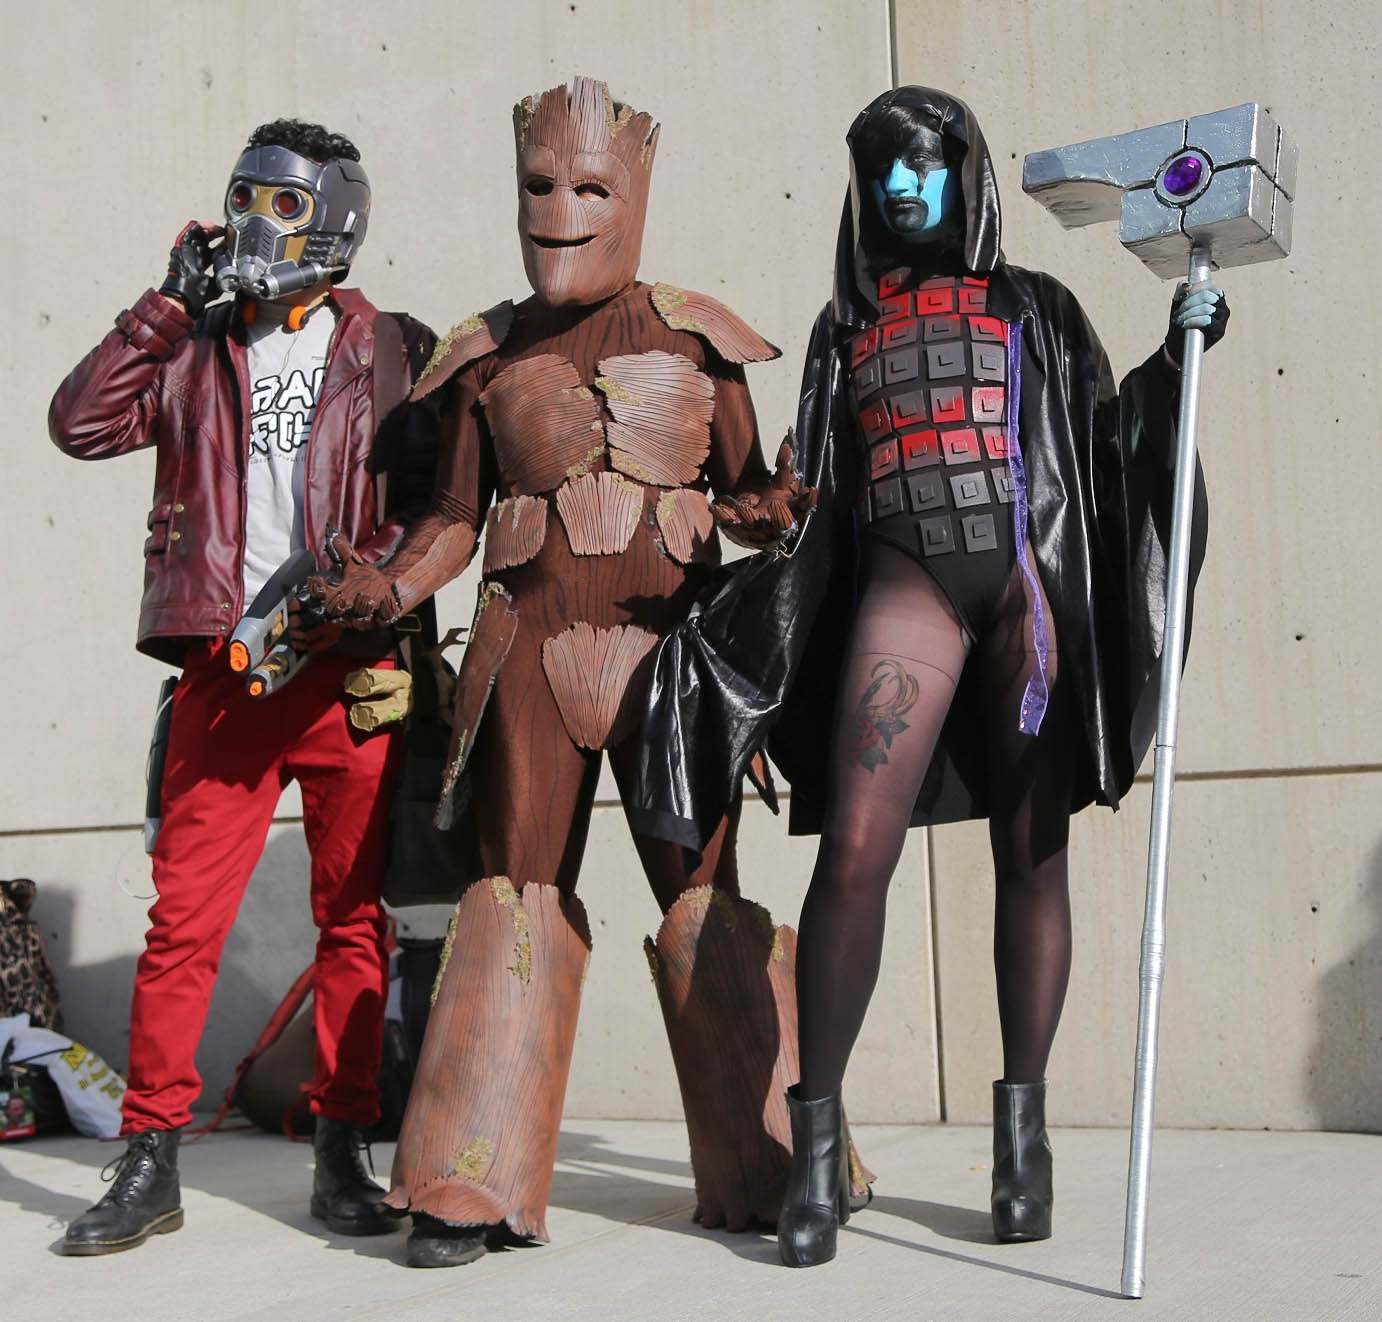 nycc11 Best Costumes from Comic Con in New York 2017